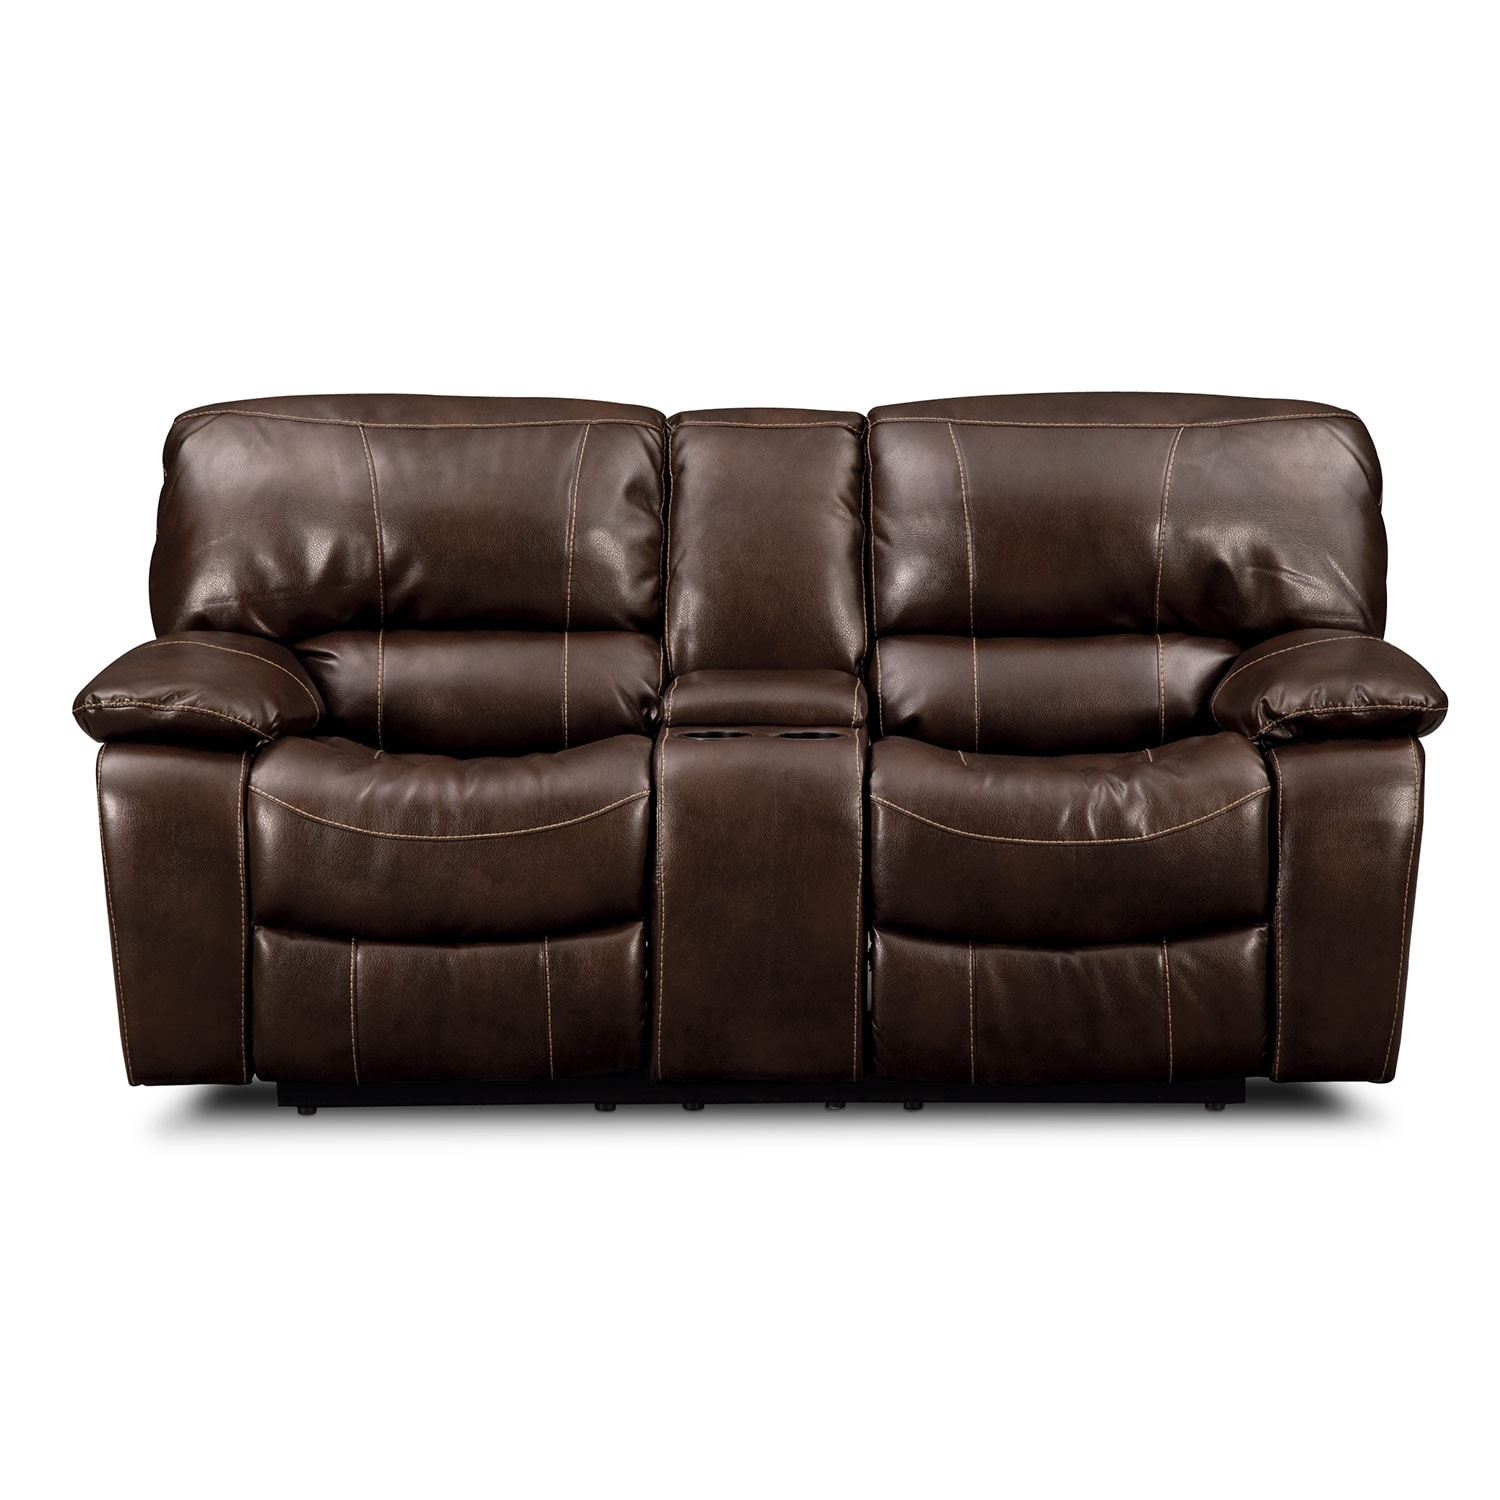 Grove Park Ii Leather Dual Reclining Loveseat Value City Furniture